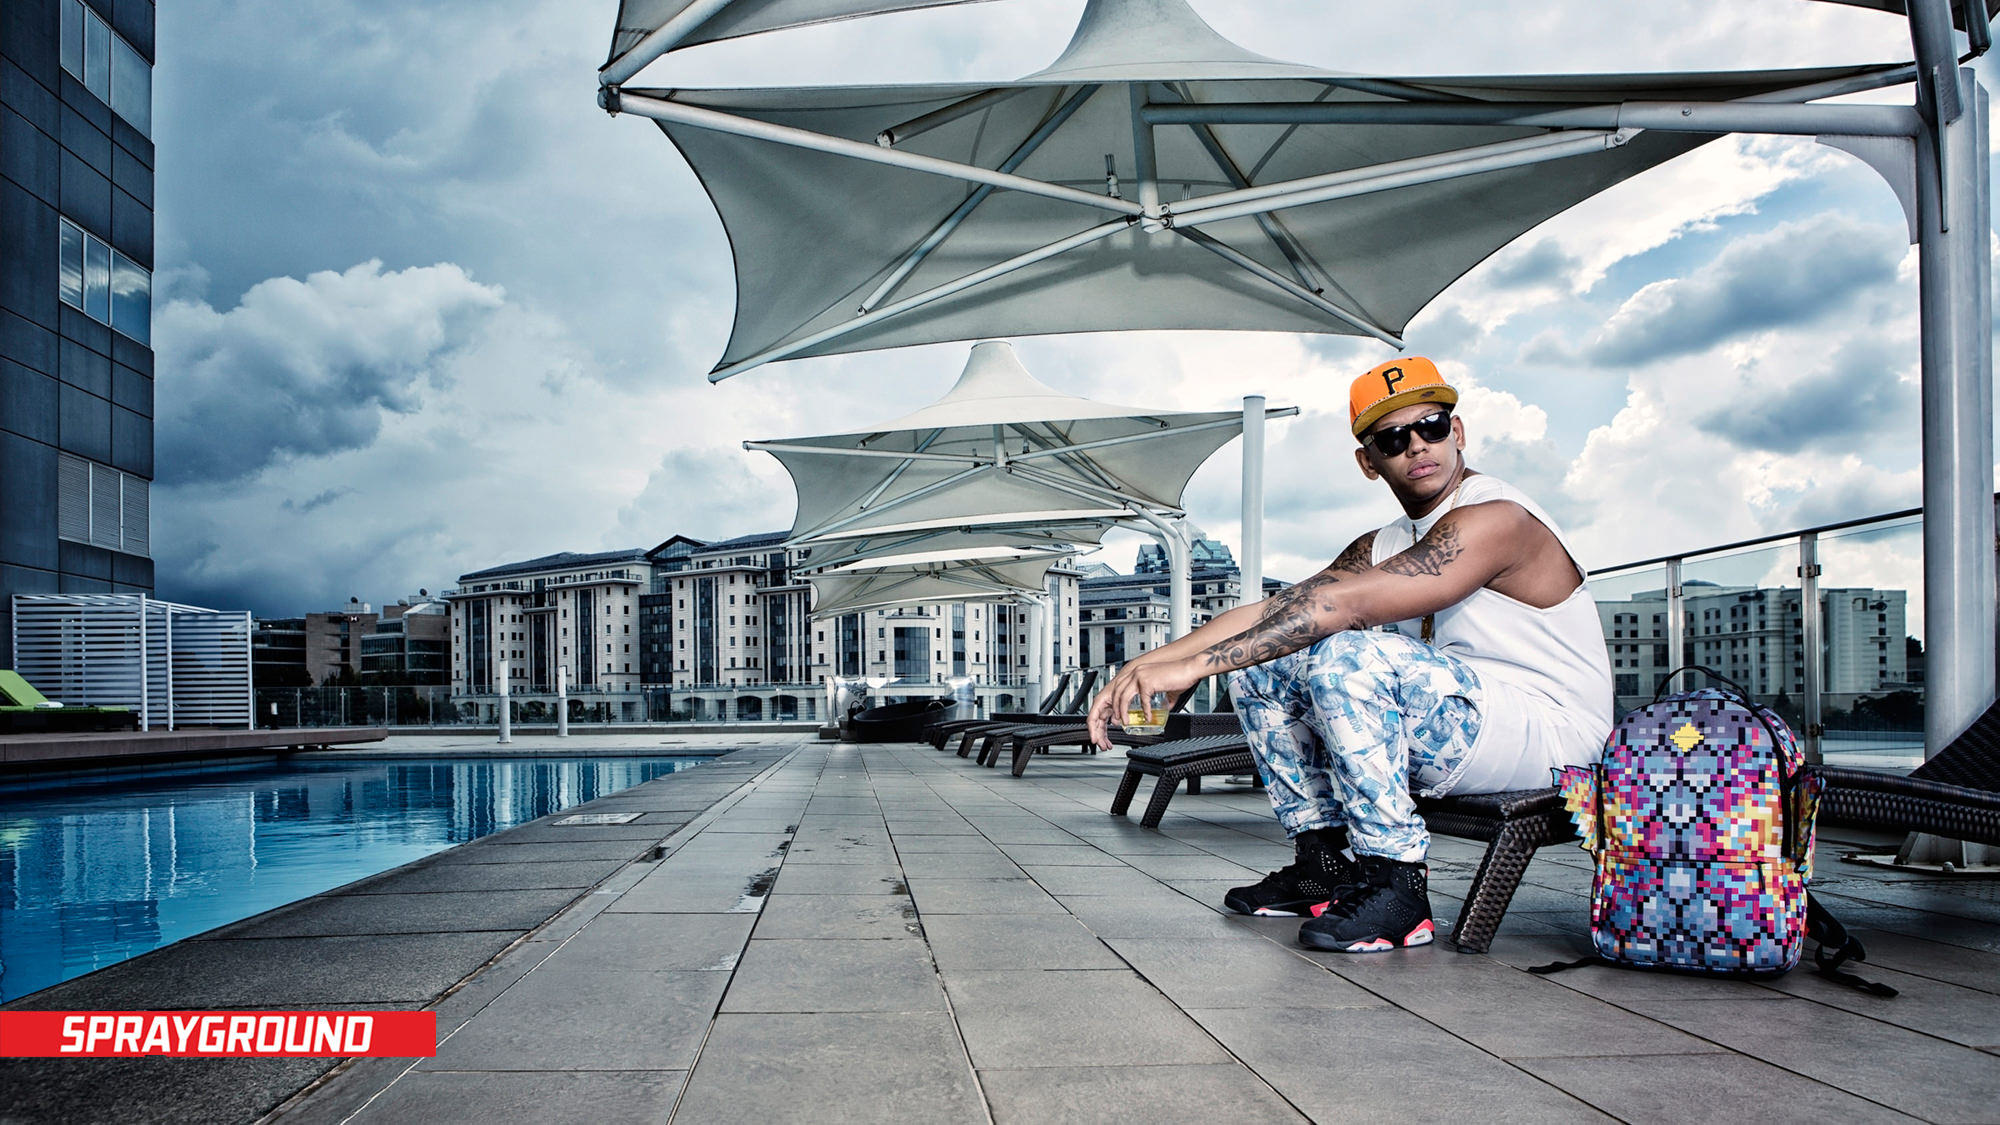 Image of Da L.E.S on Sandton Rooftop by pool for Sprayground's Africa Launch by Michelle Wastie Photography.